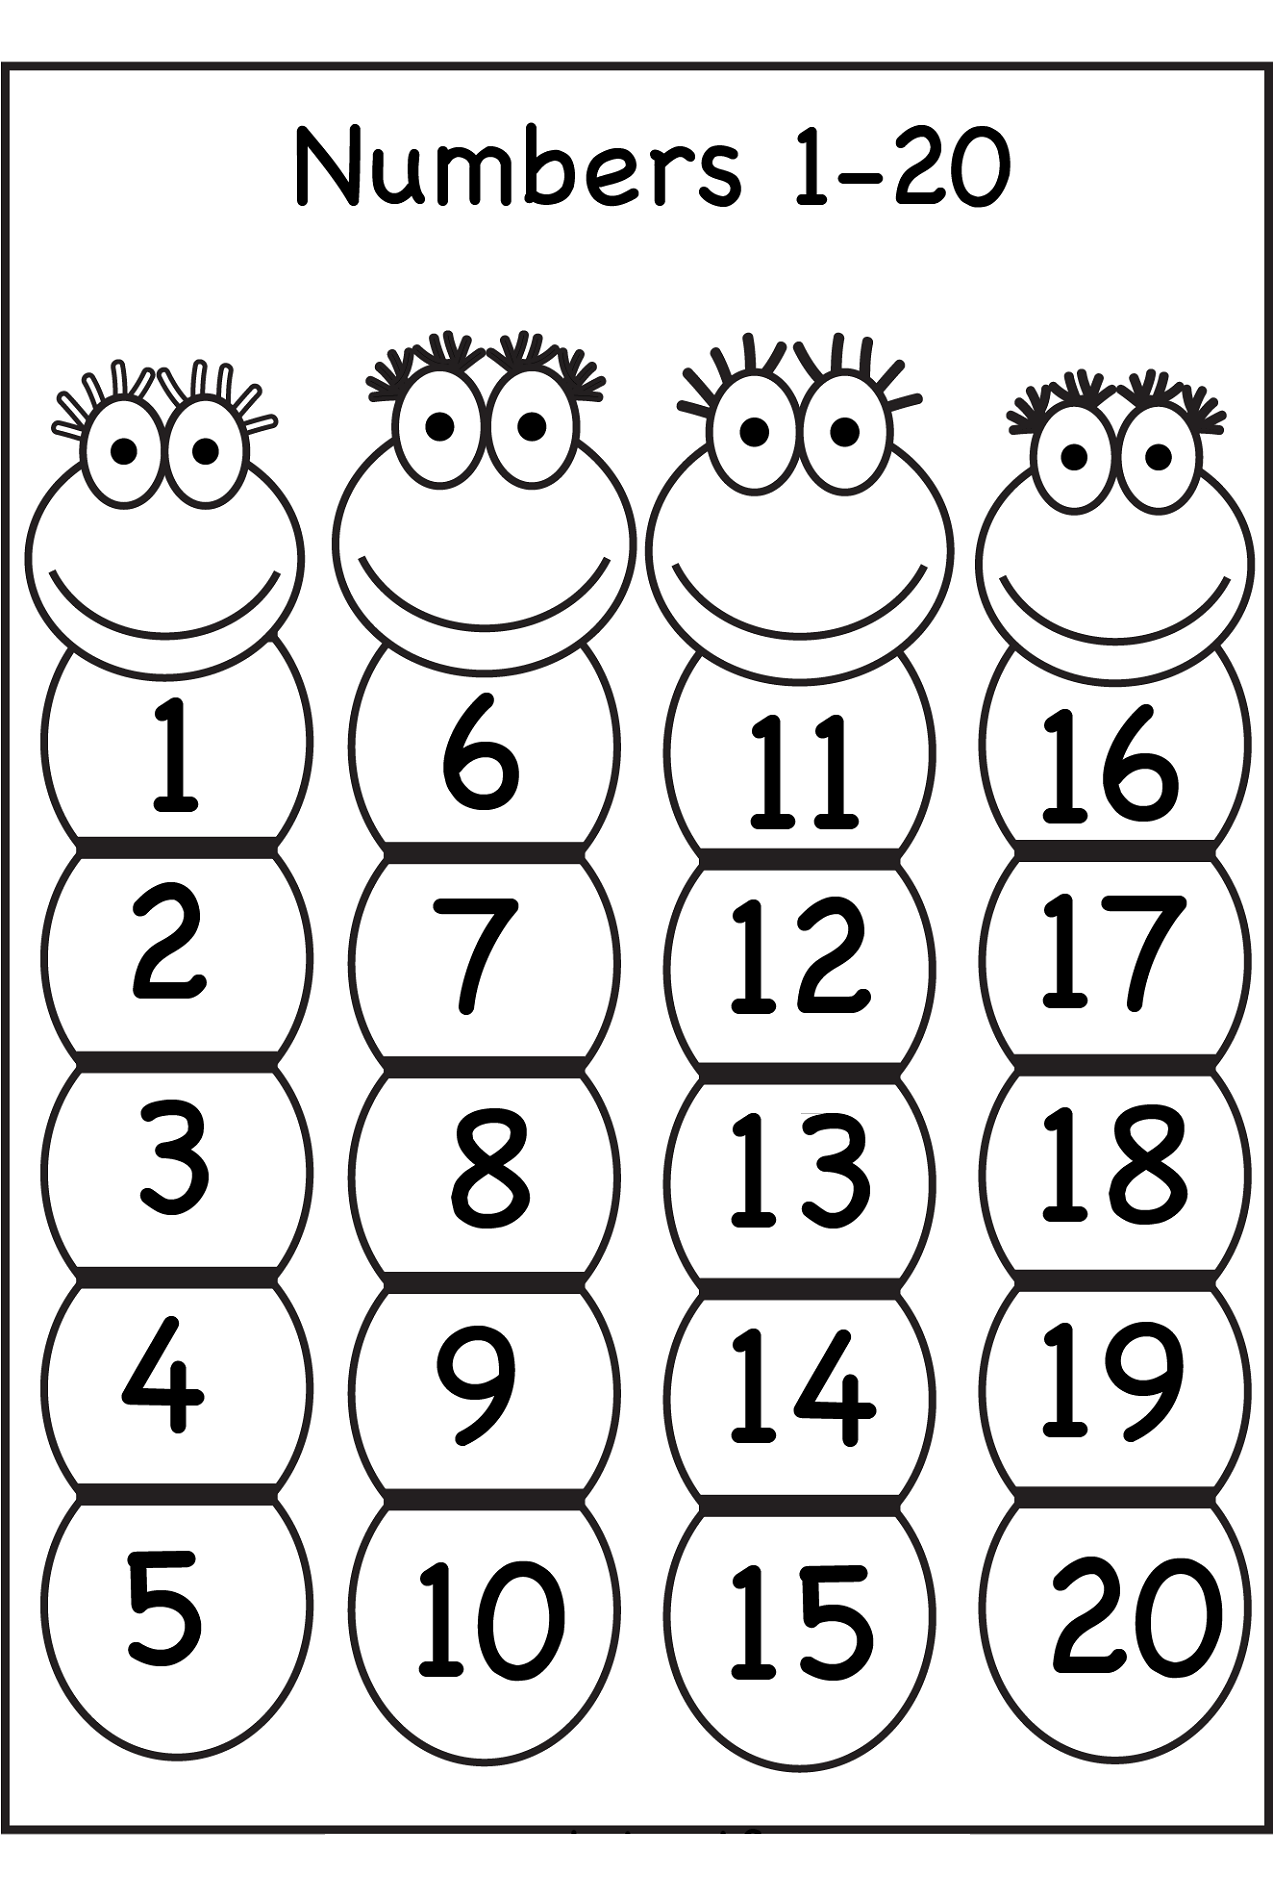 worksheet Worksheet Numbers 1 20 trace numbers 1 20 counting kid stuff pinterest worksheets counting